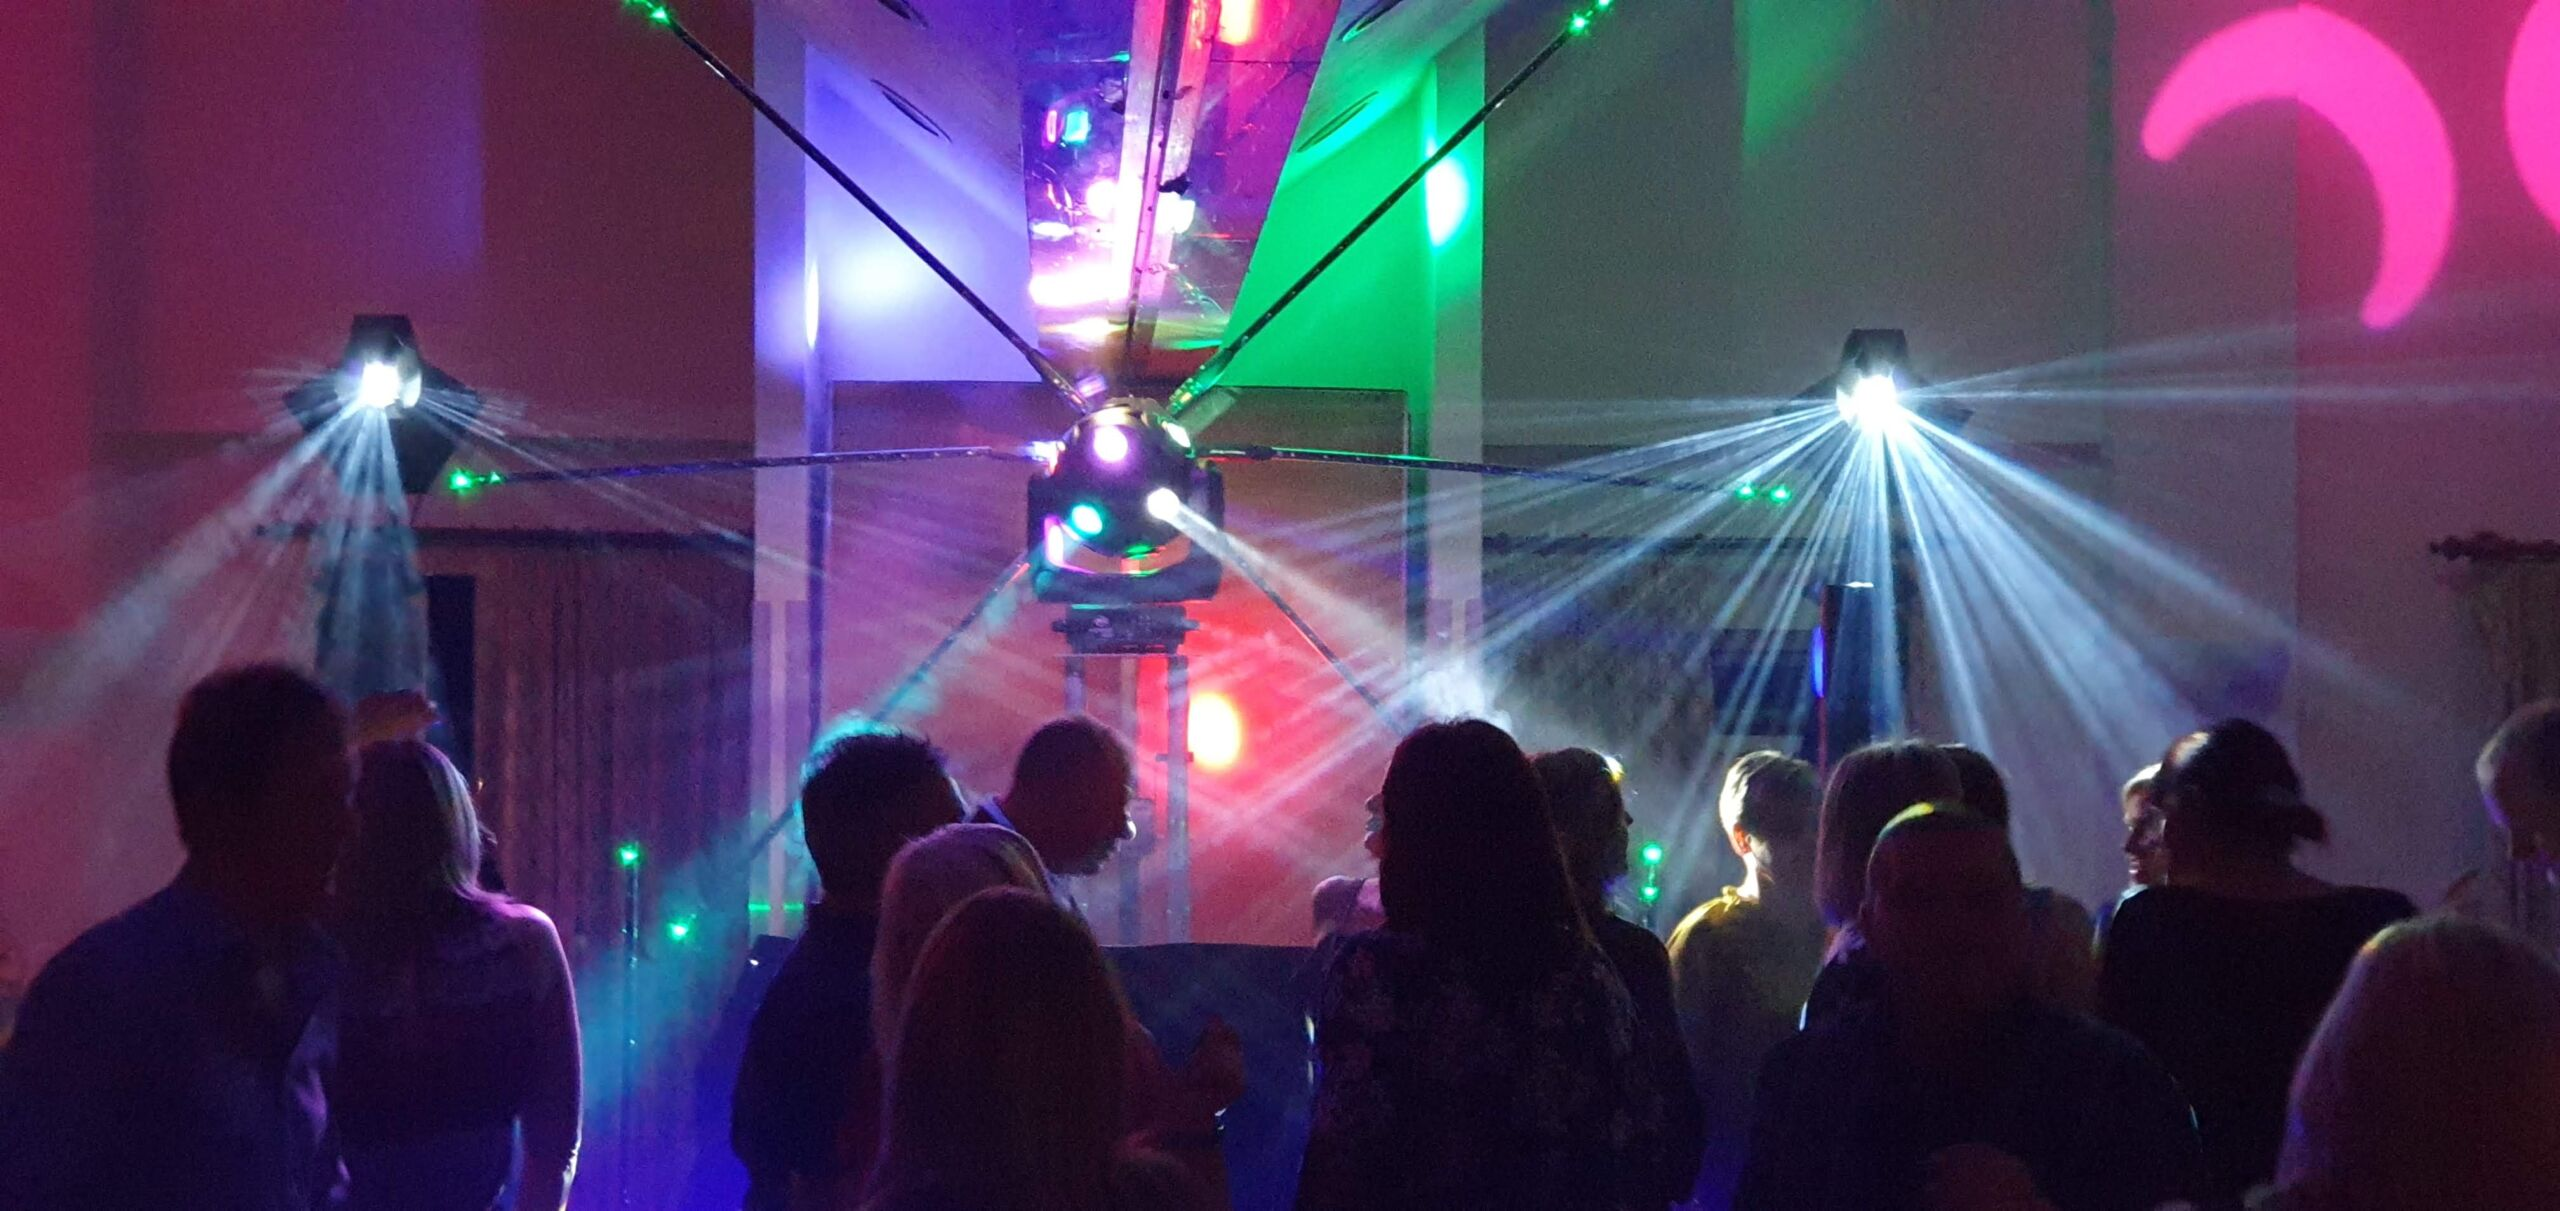 Soul Scene event with mobile disco and lighting effects